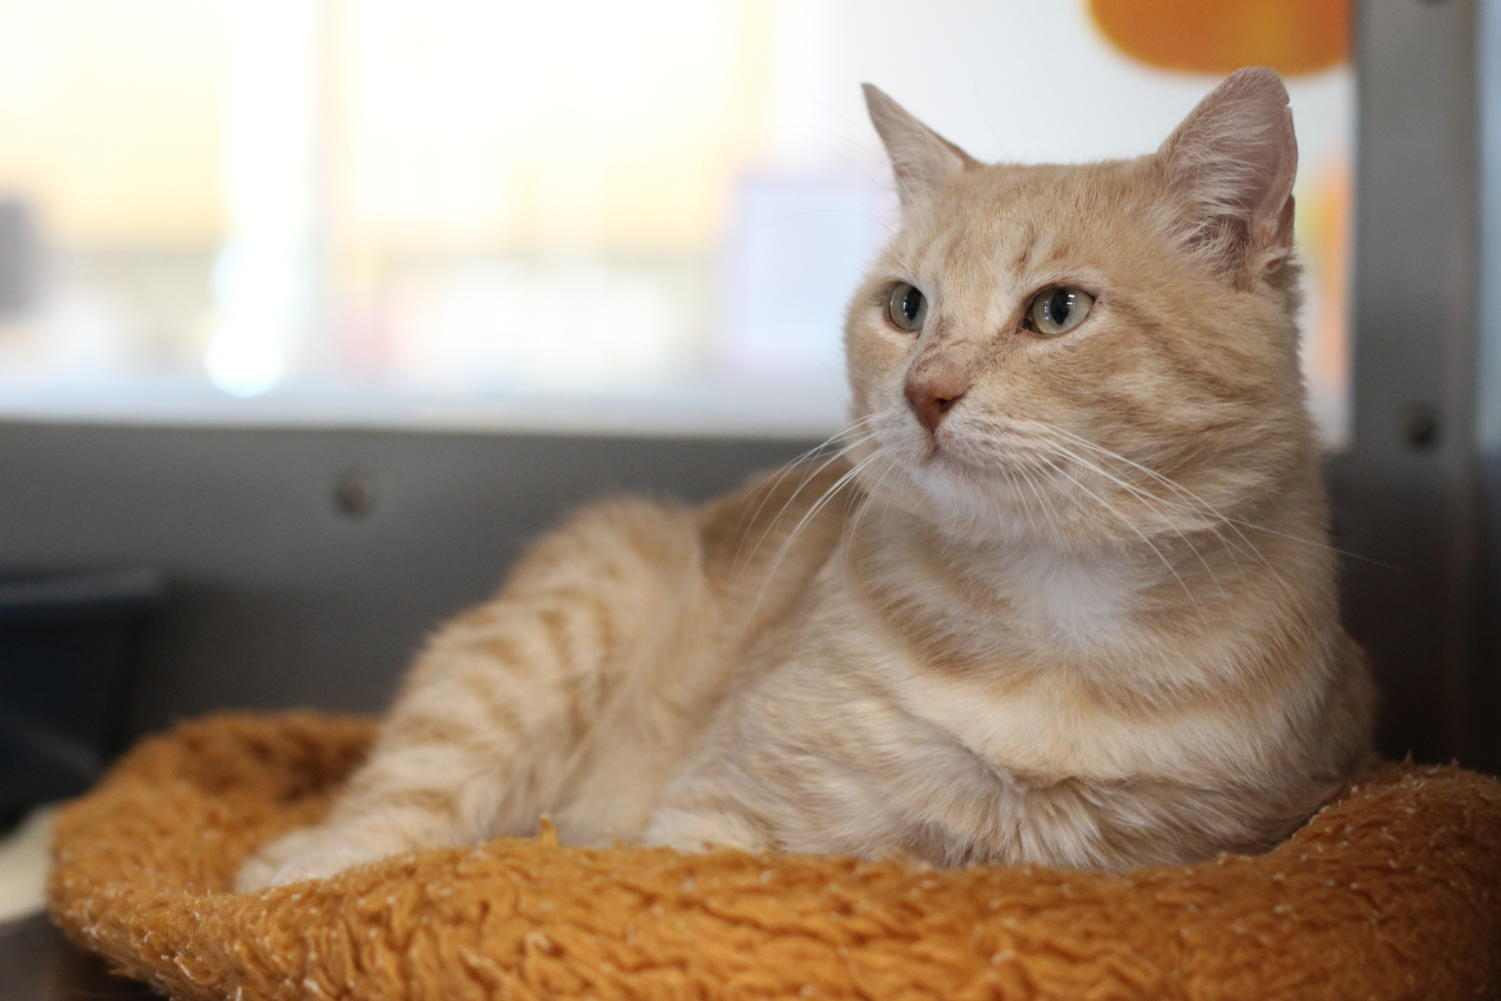 Rip is a very affectionate cat that loves people.